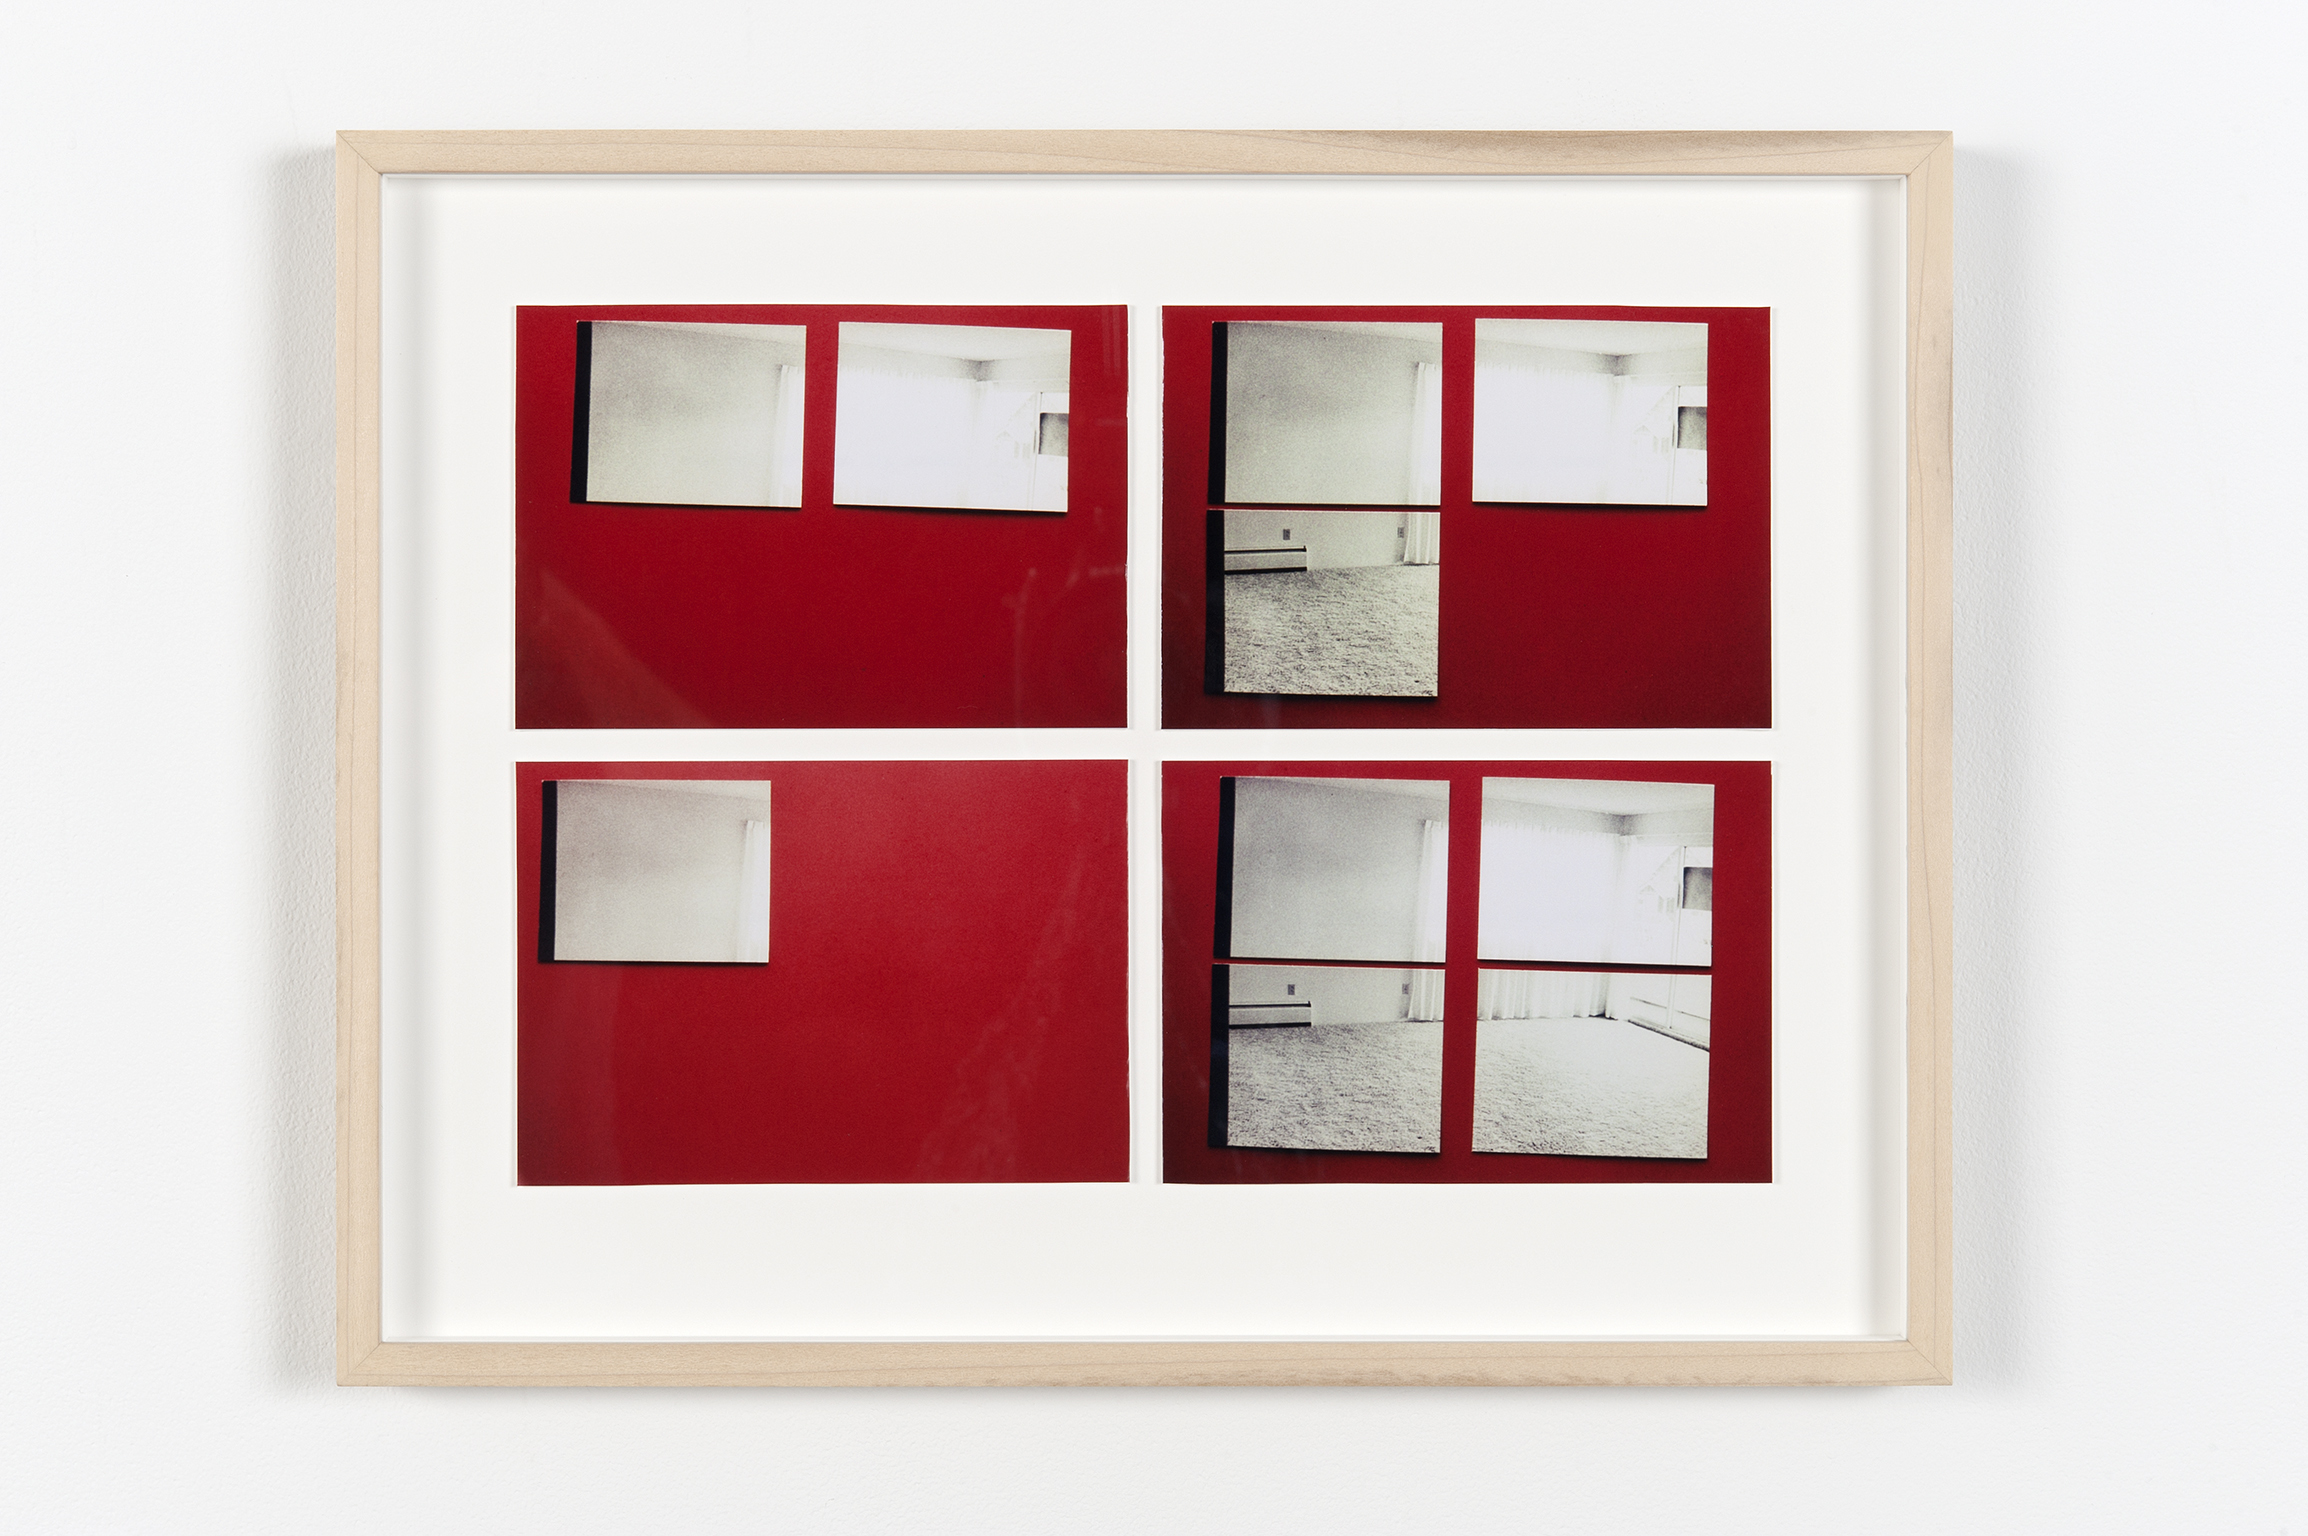 Robert Kleyn, Untitled (Apartment Study), 1976, colour photographs, 15 x 19 in. (37 x 47 cm) by